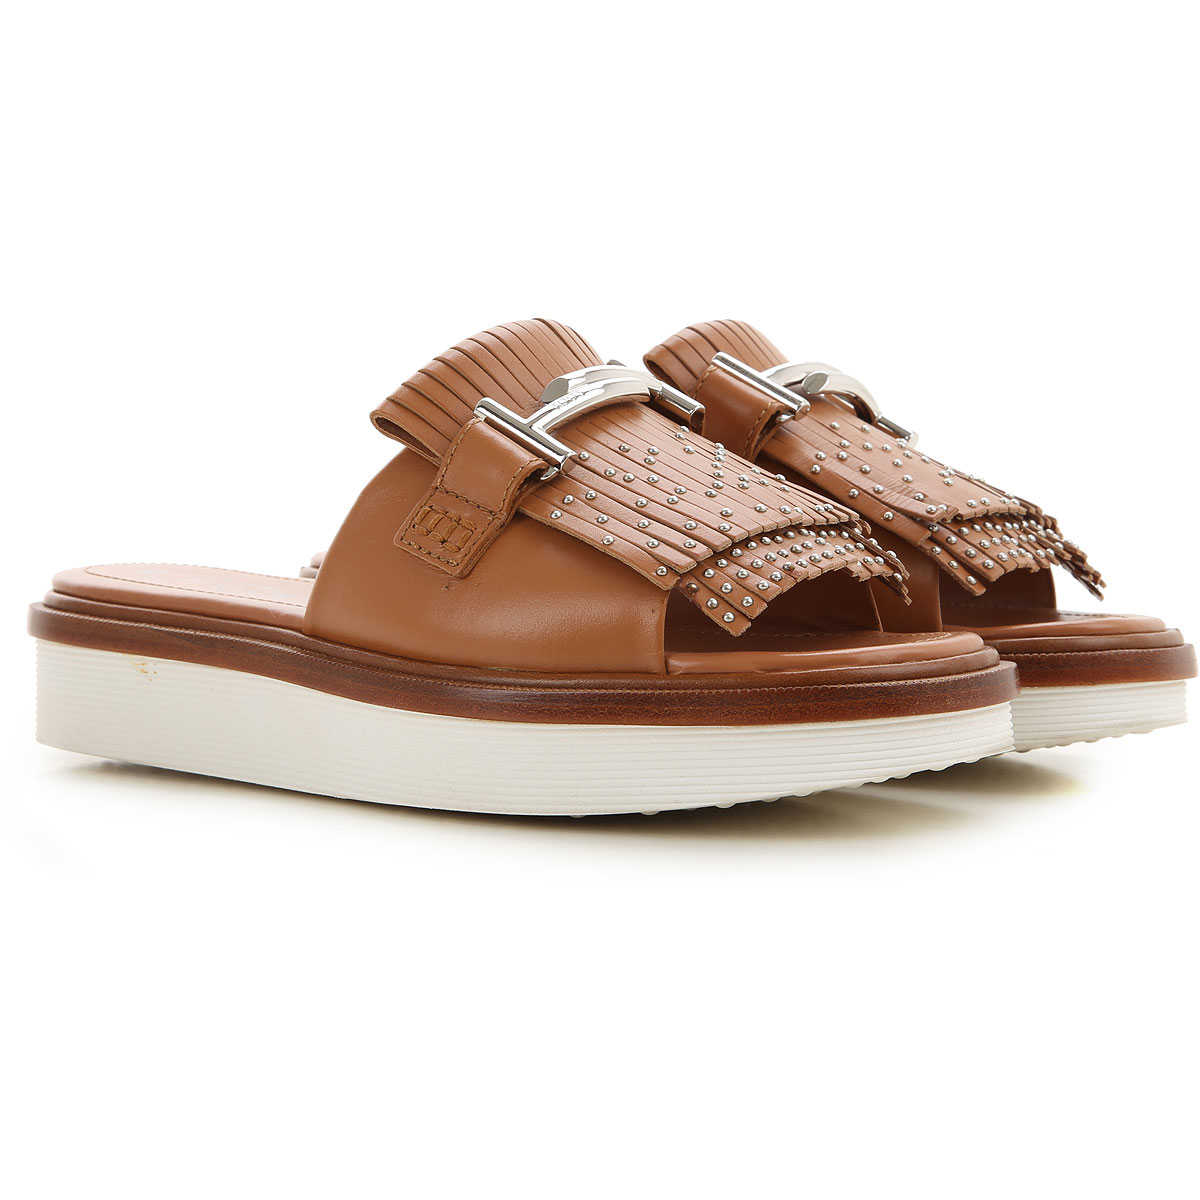 Tods Sandals for Women Leather Brown SE - GOOFASH